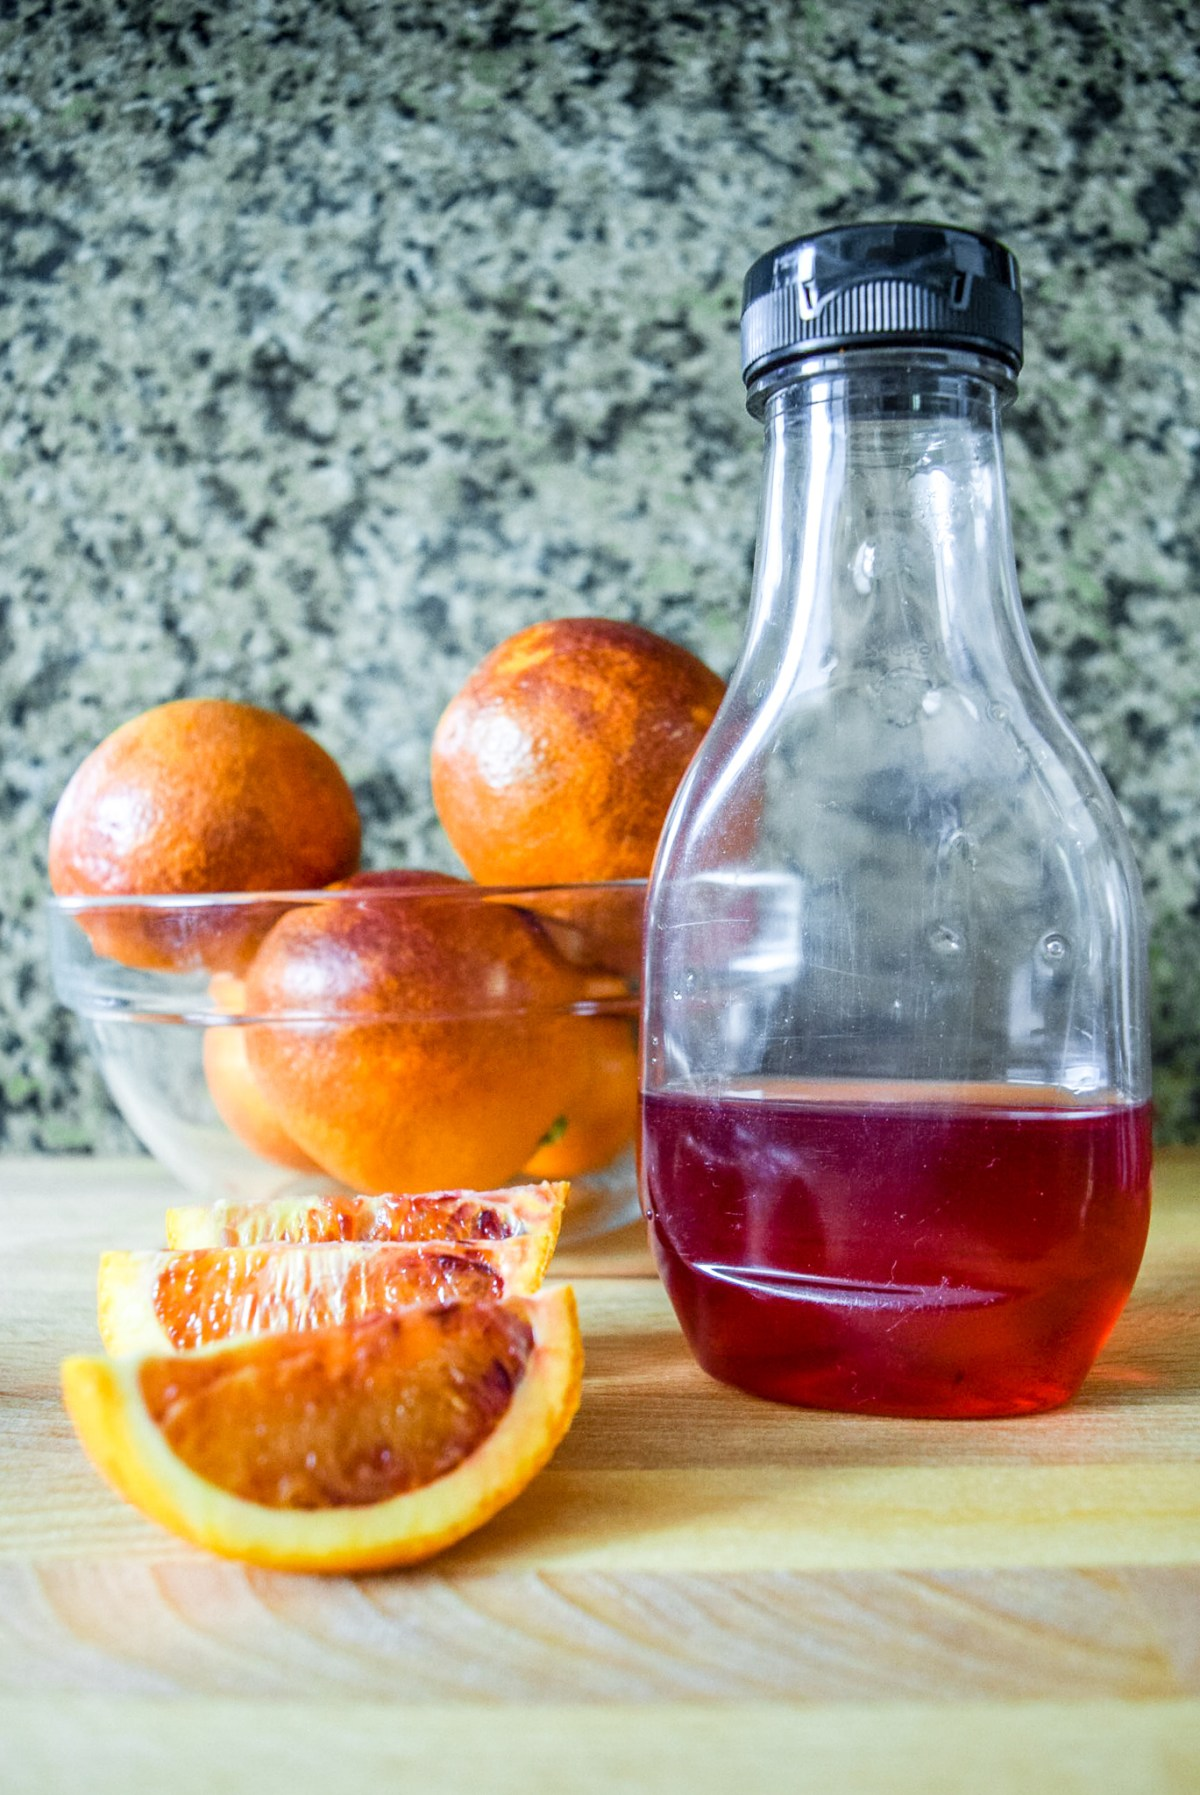 Finished blood orange syrup with sliced blood oranges from top